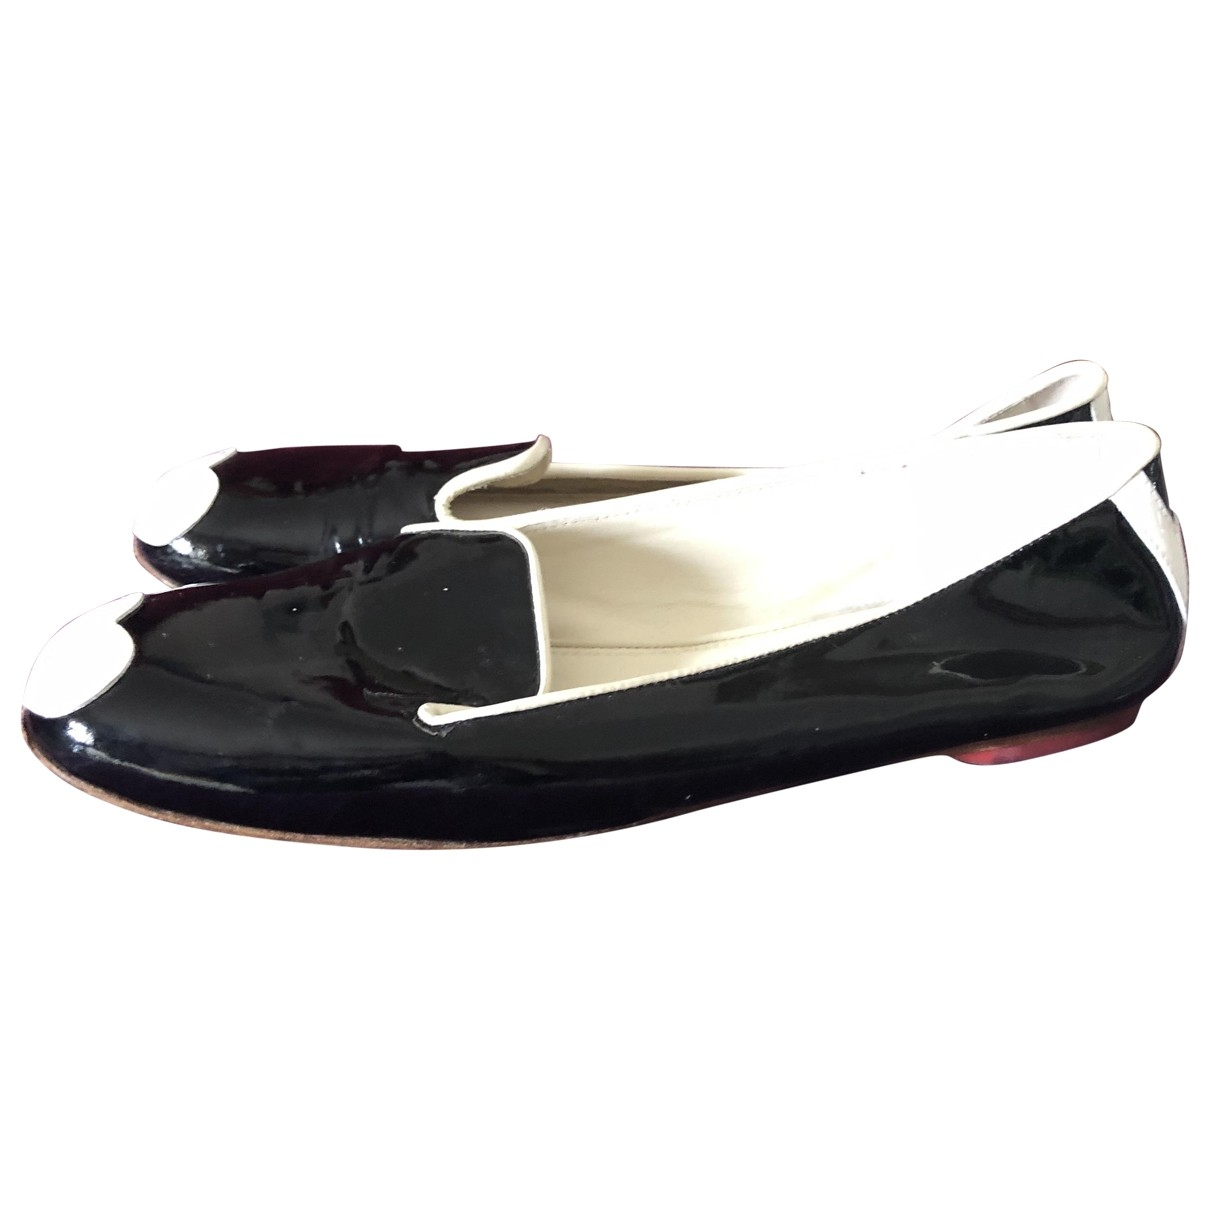 Hogan \N Black Patent leather Flats for Women 39 EU